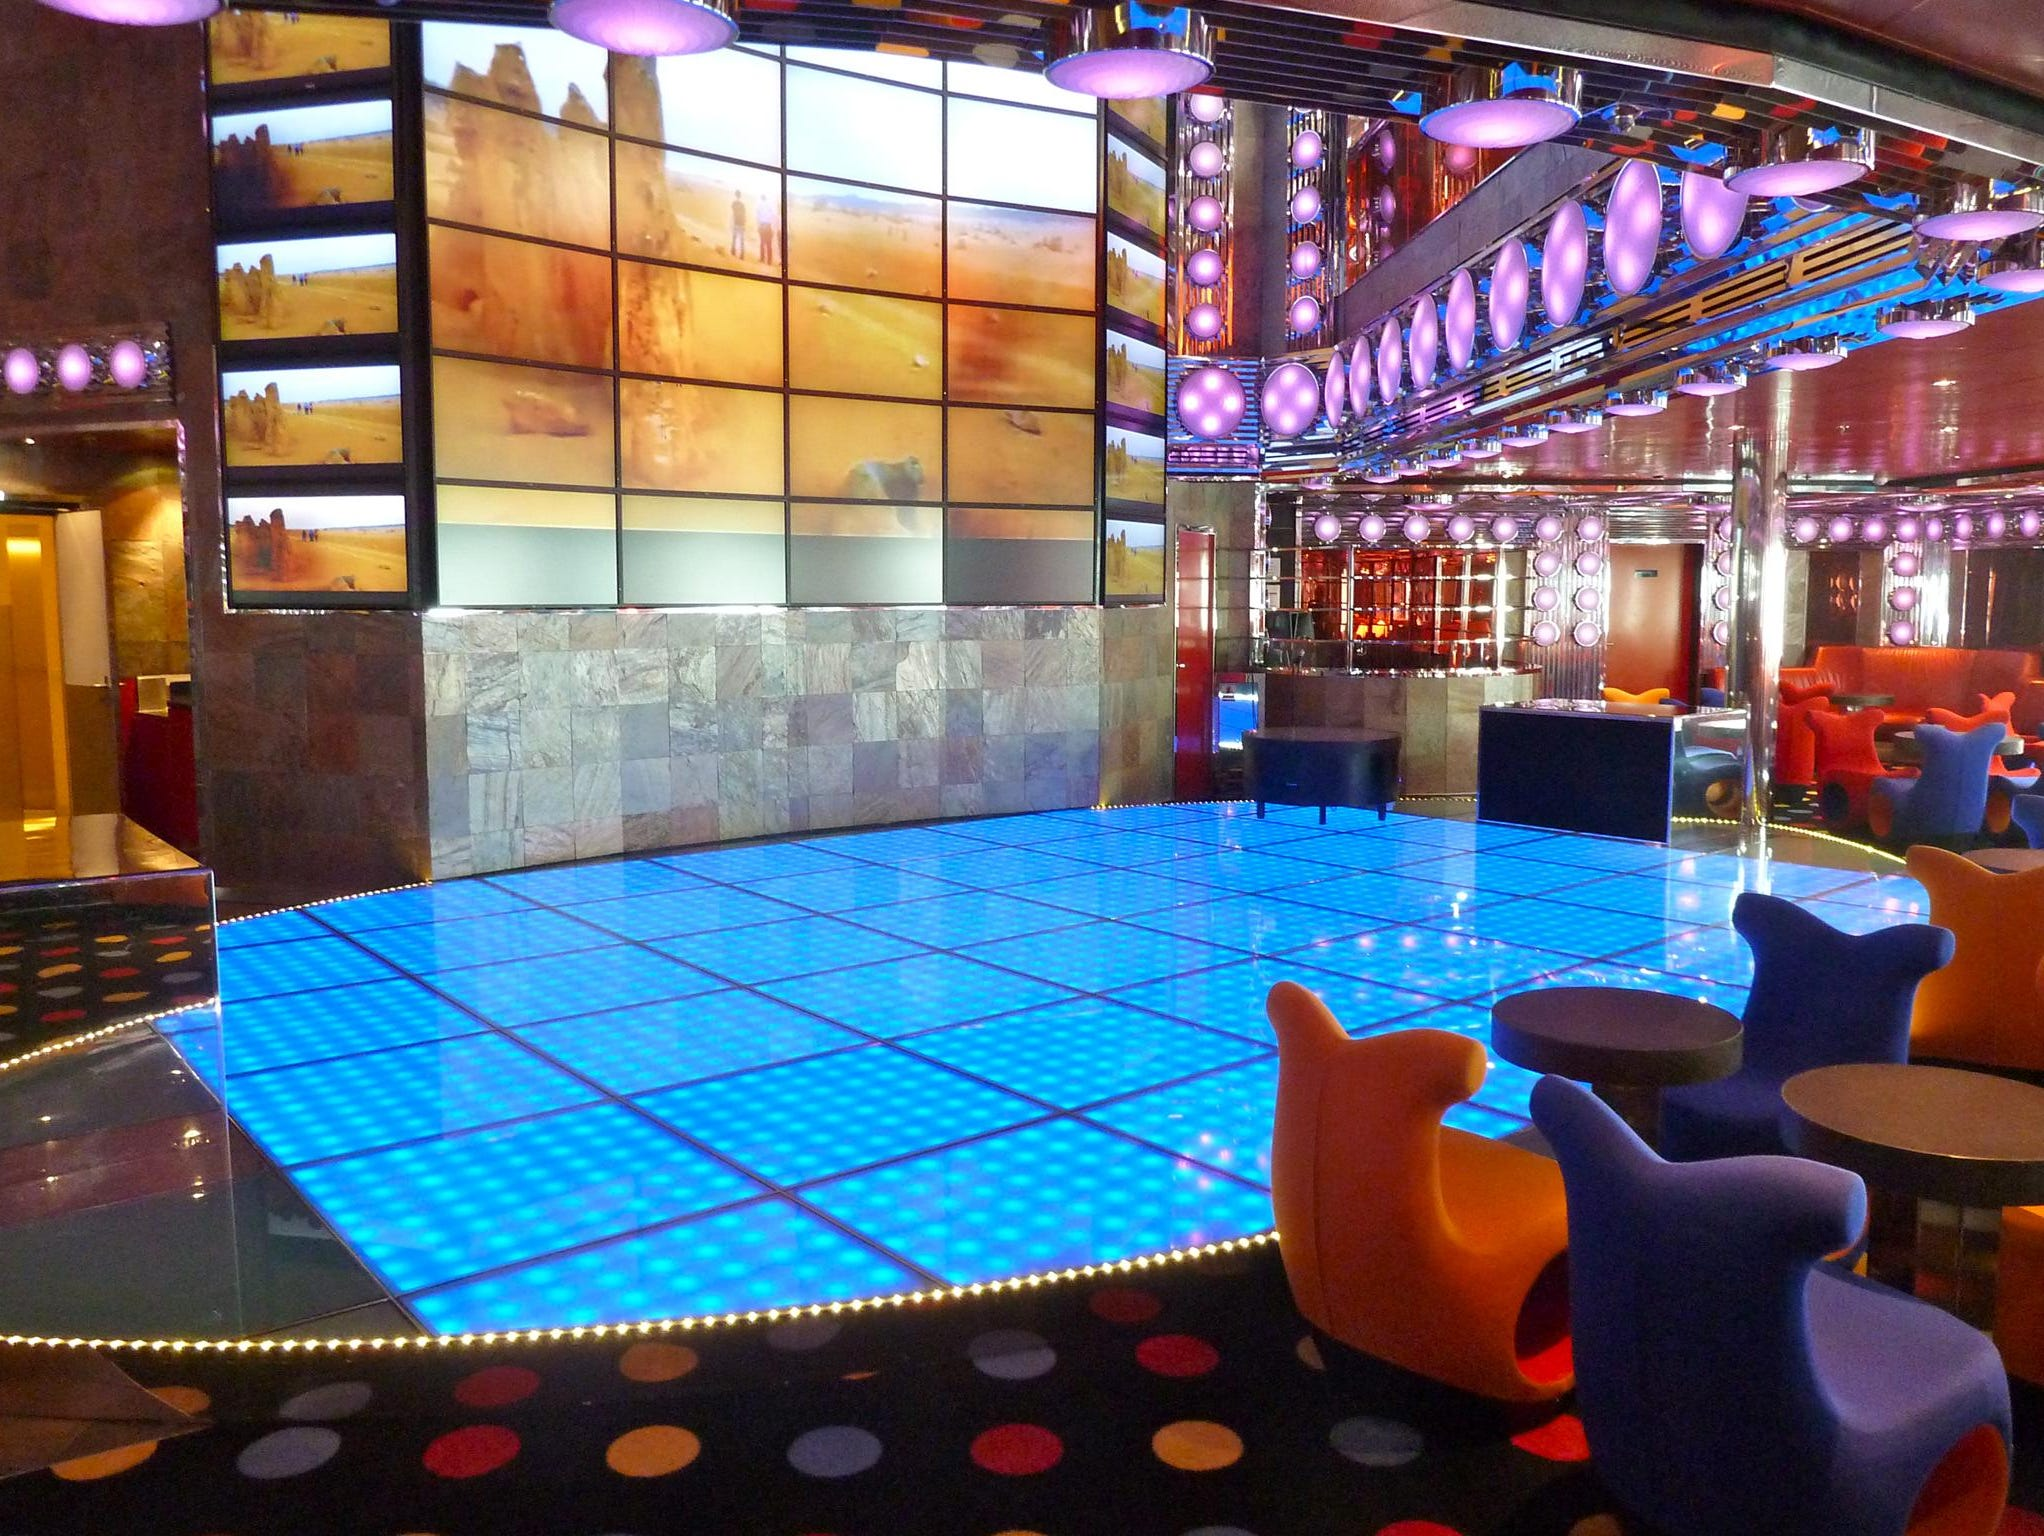 """Inboard of the Lounge and Bar Alcazar on Gardenia Deck, there is the lower level of the double-deck Discoteca Shaharazad (Farsi and Arabic for """"city dweller""""), which features a fiber-optic acrylic dance floor, vivid polka dots and pulsating lavender and blue lighting."""